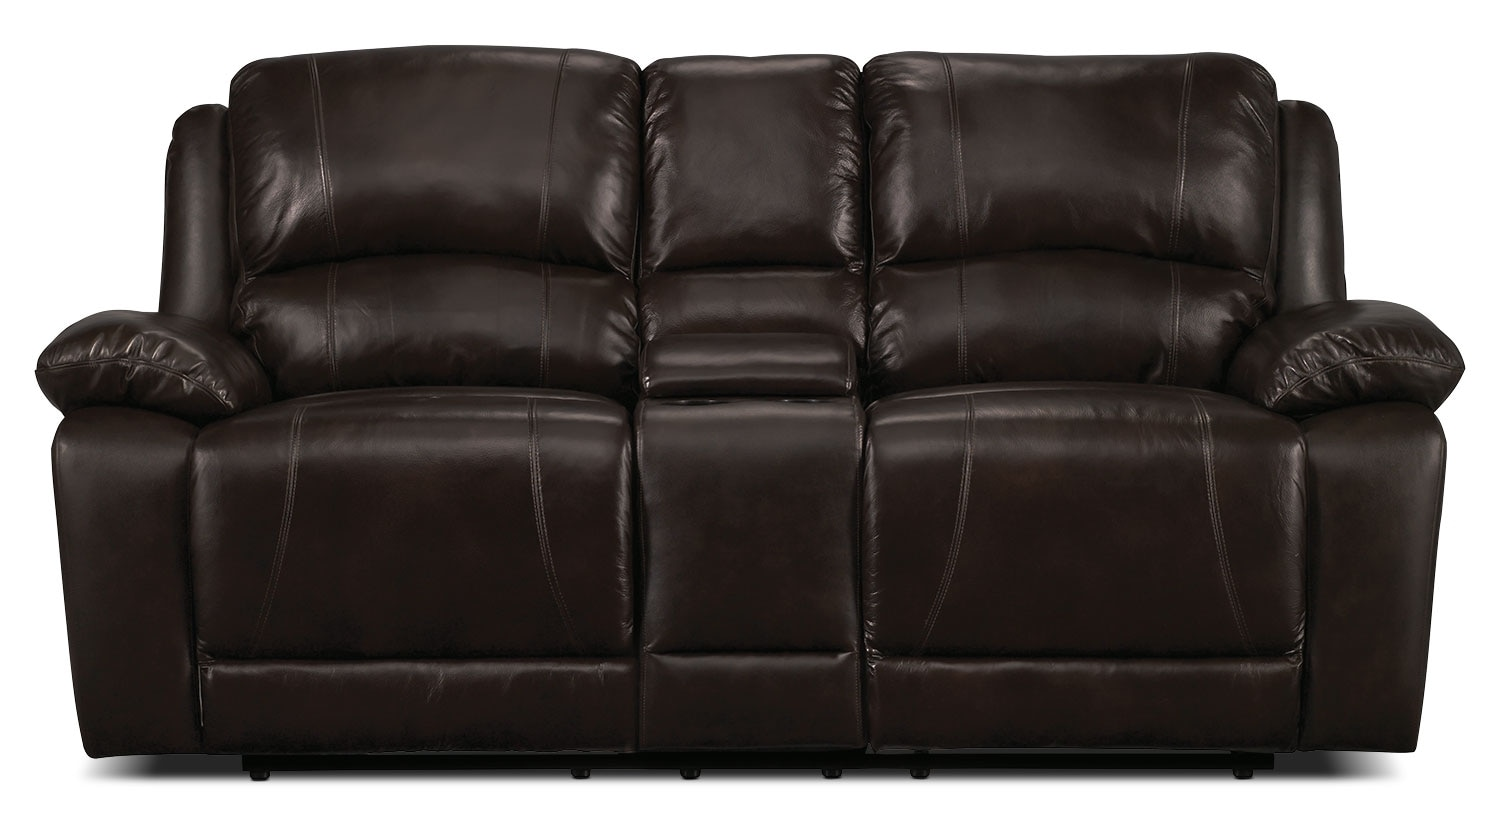 Real Leather Recliner Chairs Marco Genuine Leather Power Reclining Loveseat Chocolate